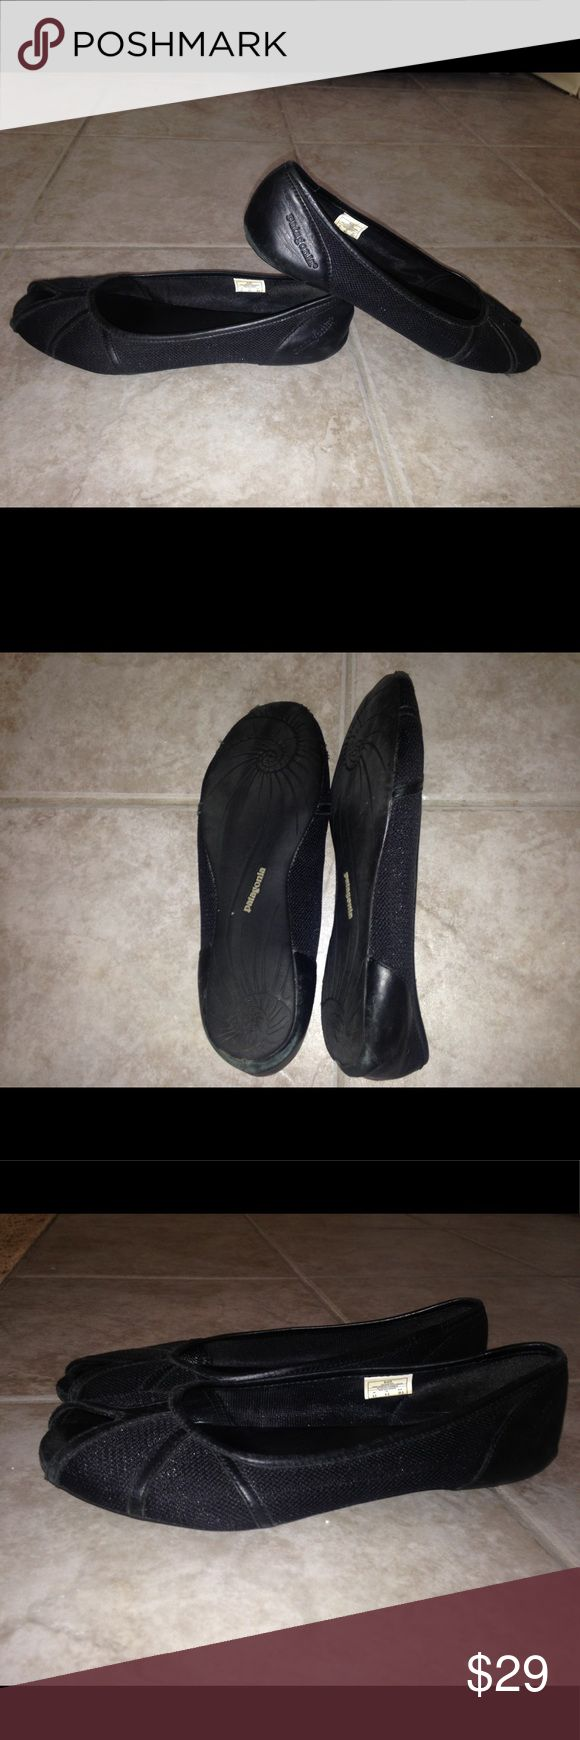 Patagonia flats leather with mesh Super comfy and zerodrop shoes. They do have wear and tear on them but in good condition (please see photos). Got to love Patagonia quality. Patagonia Shoes Flats & Loafers